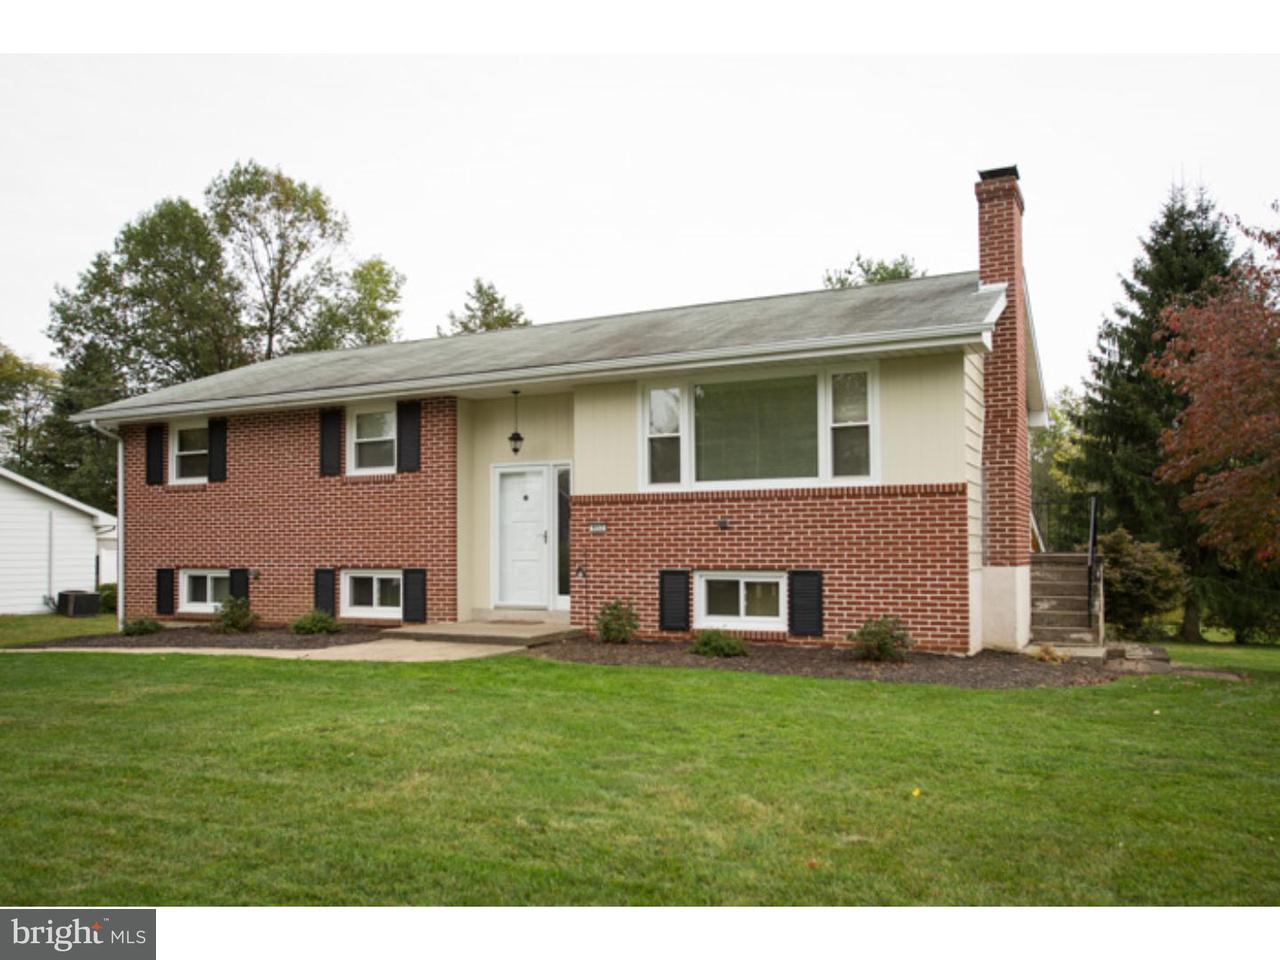 Single Family Home for Rent at 952 POPLAR Street Coopersburg, Pennsylvania 18036 United States